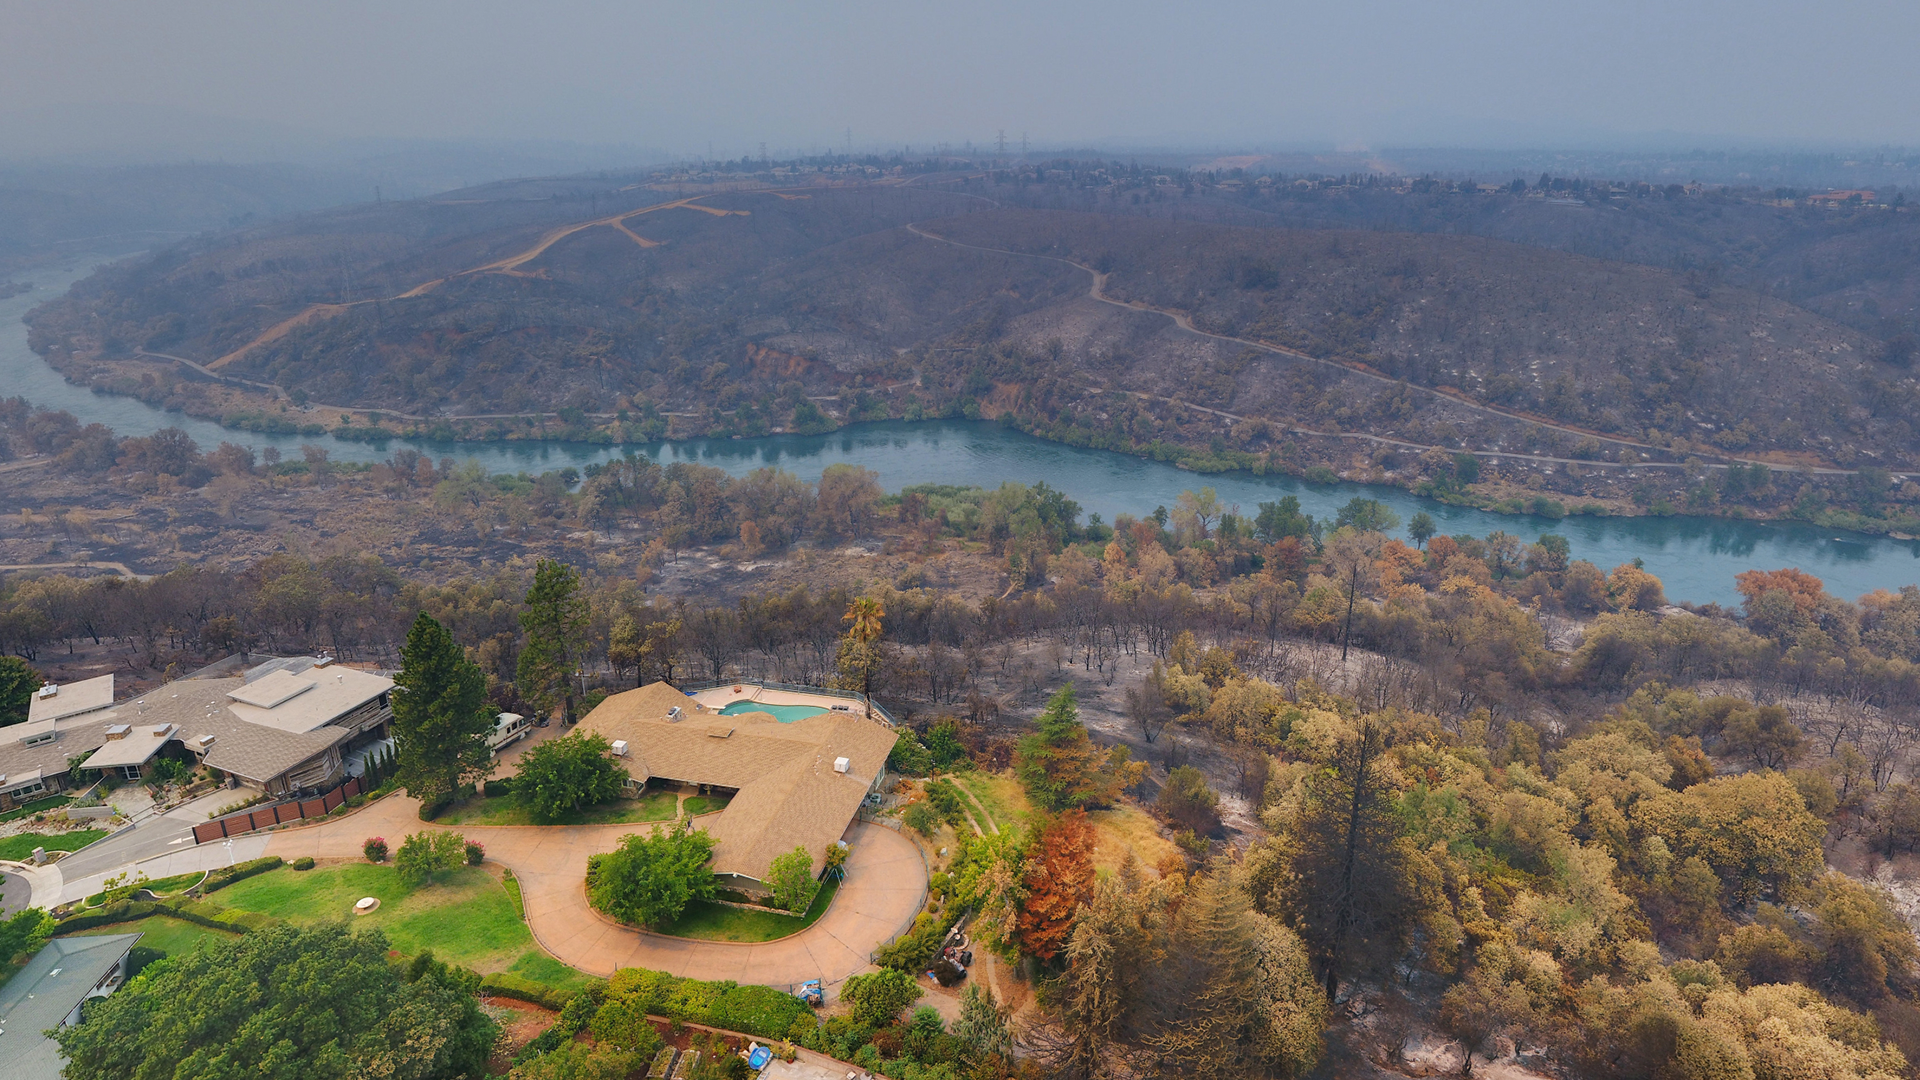 Homes left standing next to charred ground from the Carr Fire in California.